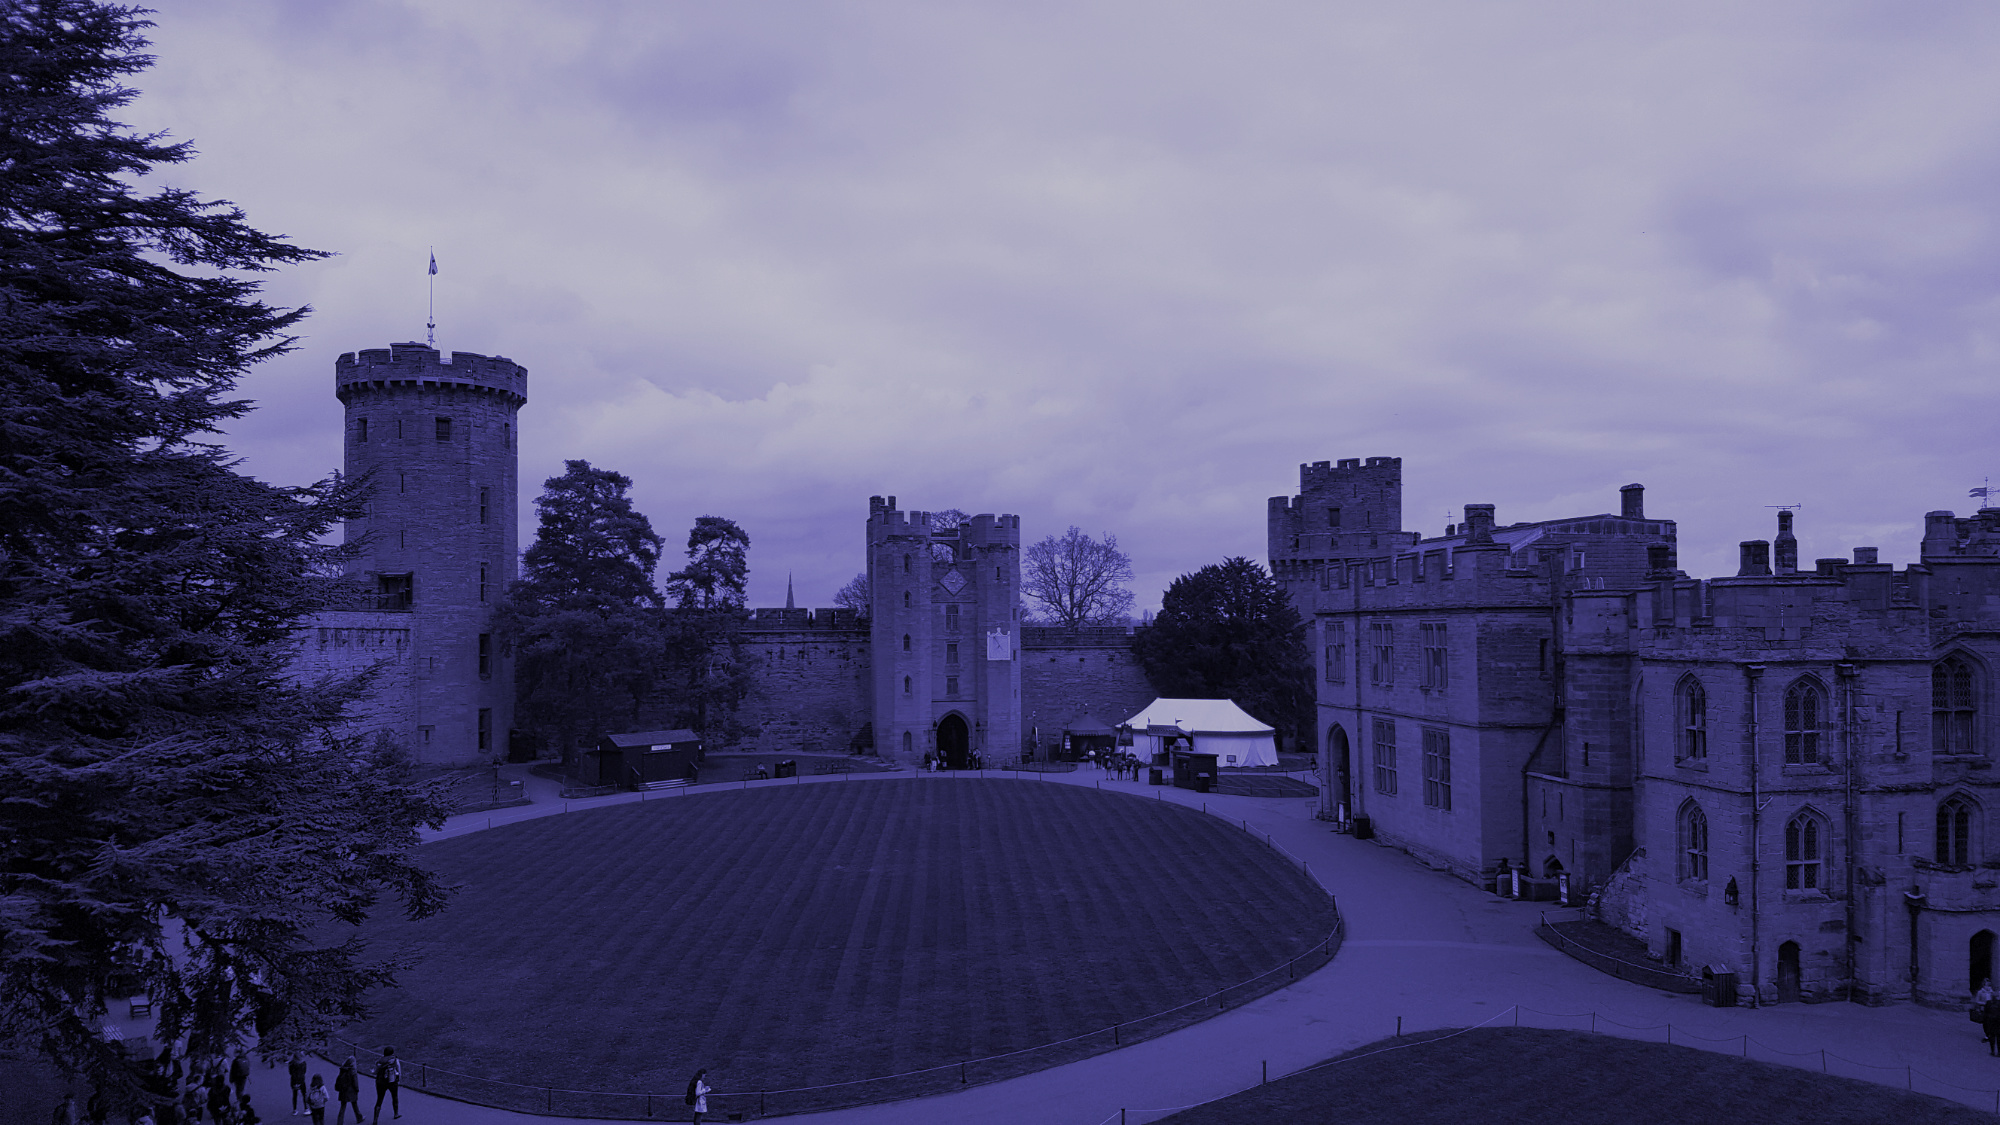 Episode 31 – Warwick Castle